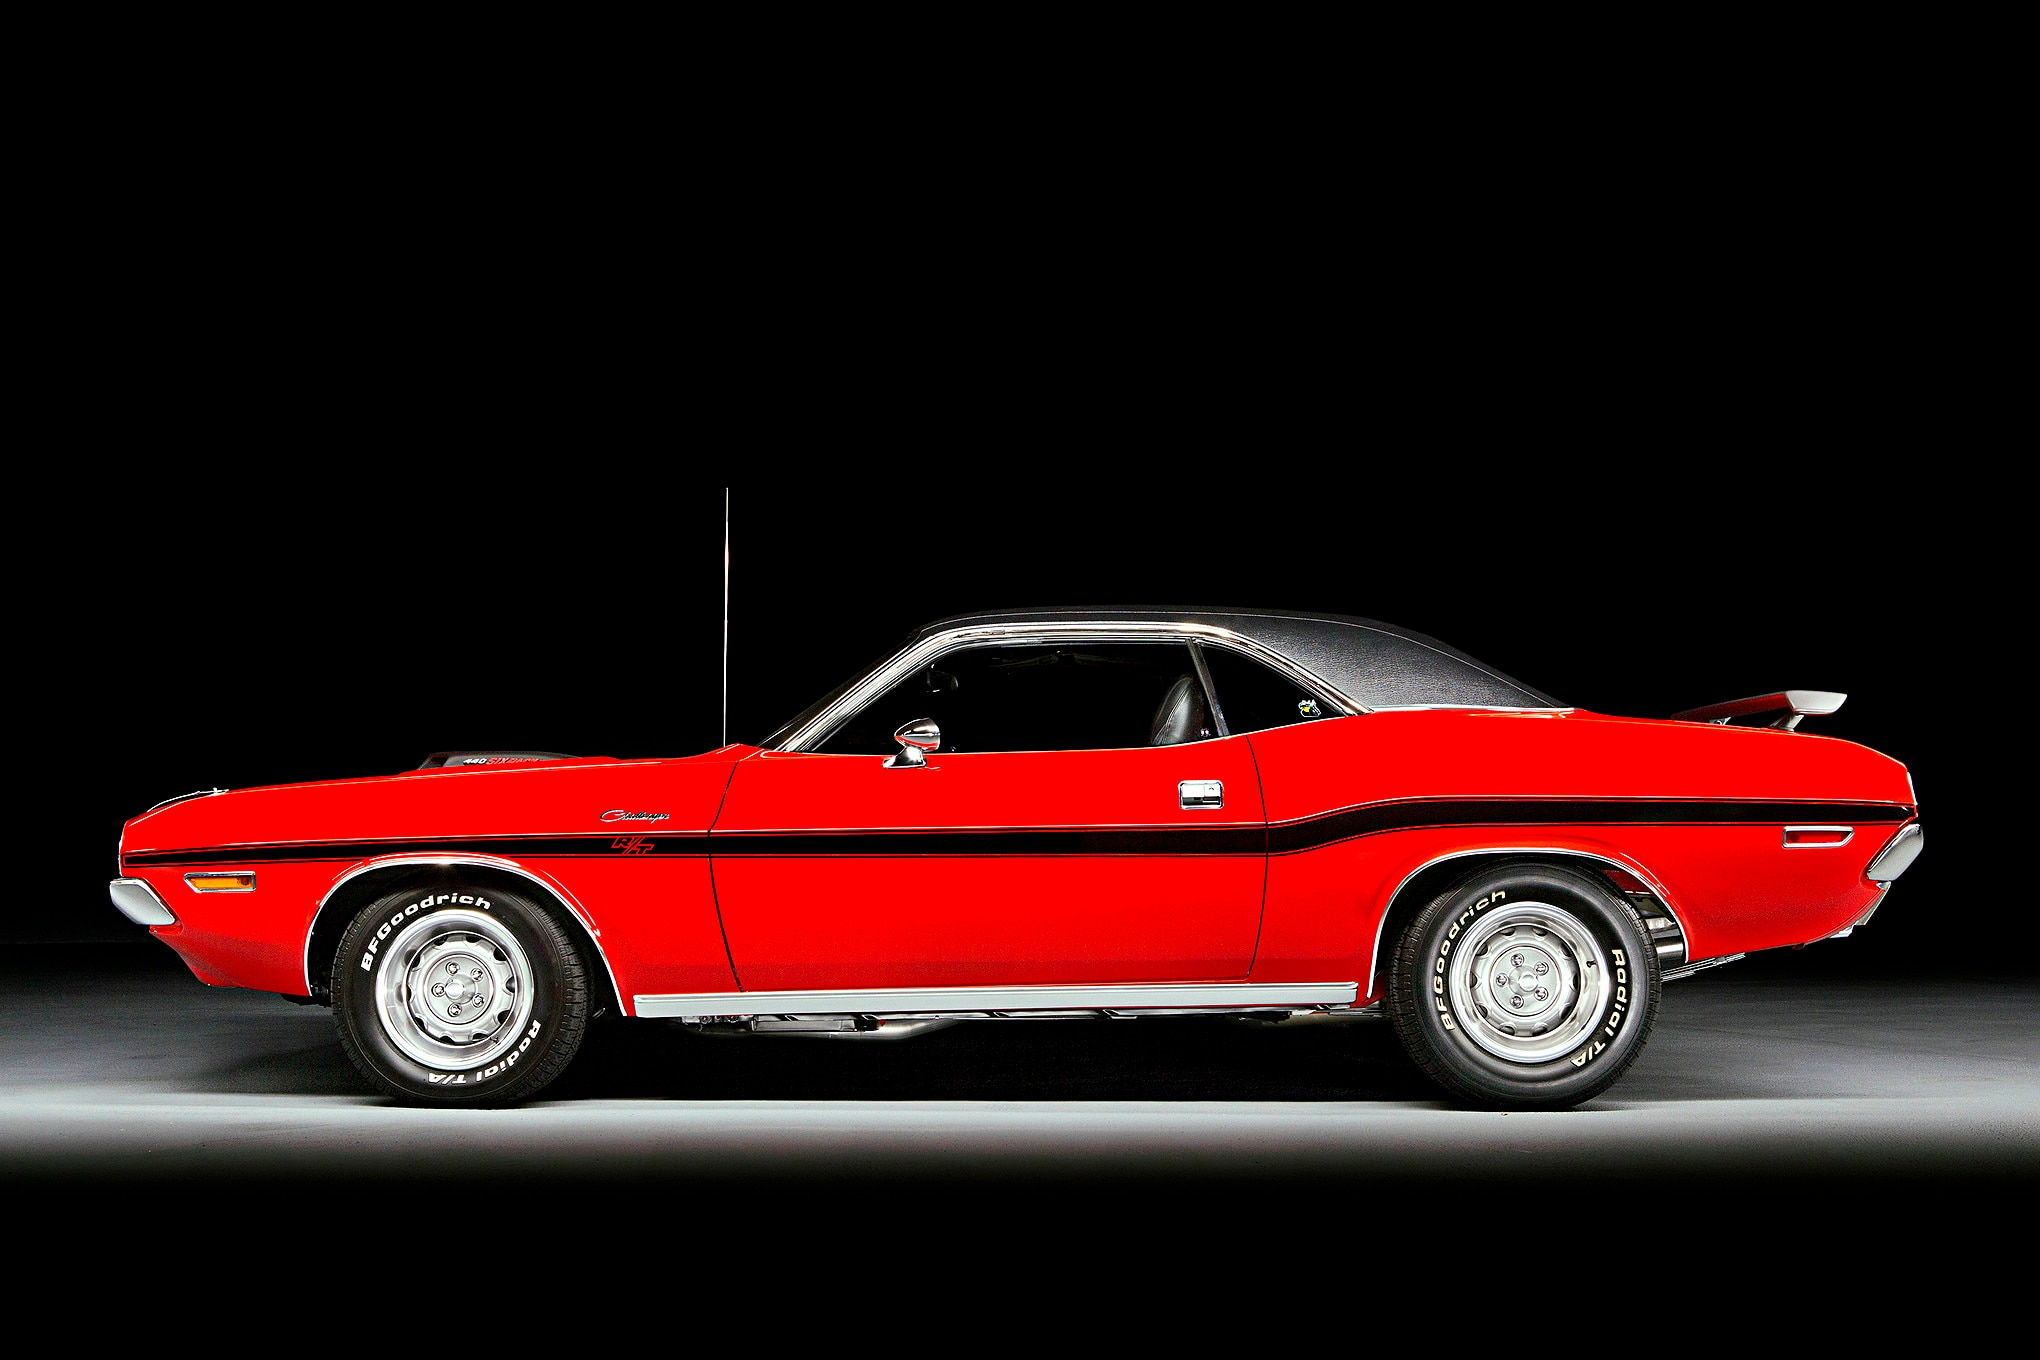 John Kennedy has owned this car for more than 20 years and while the restoration process was painful at first, Mike Mancini at American Muscle Car Restorations took this Challenger to a level very few ever get to.